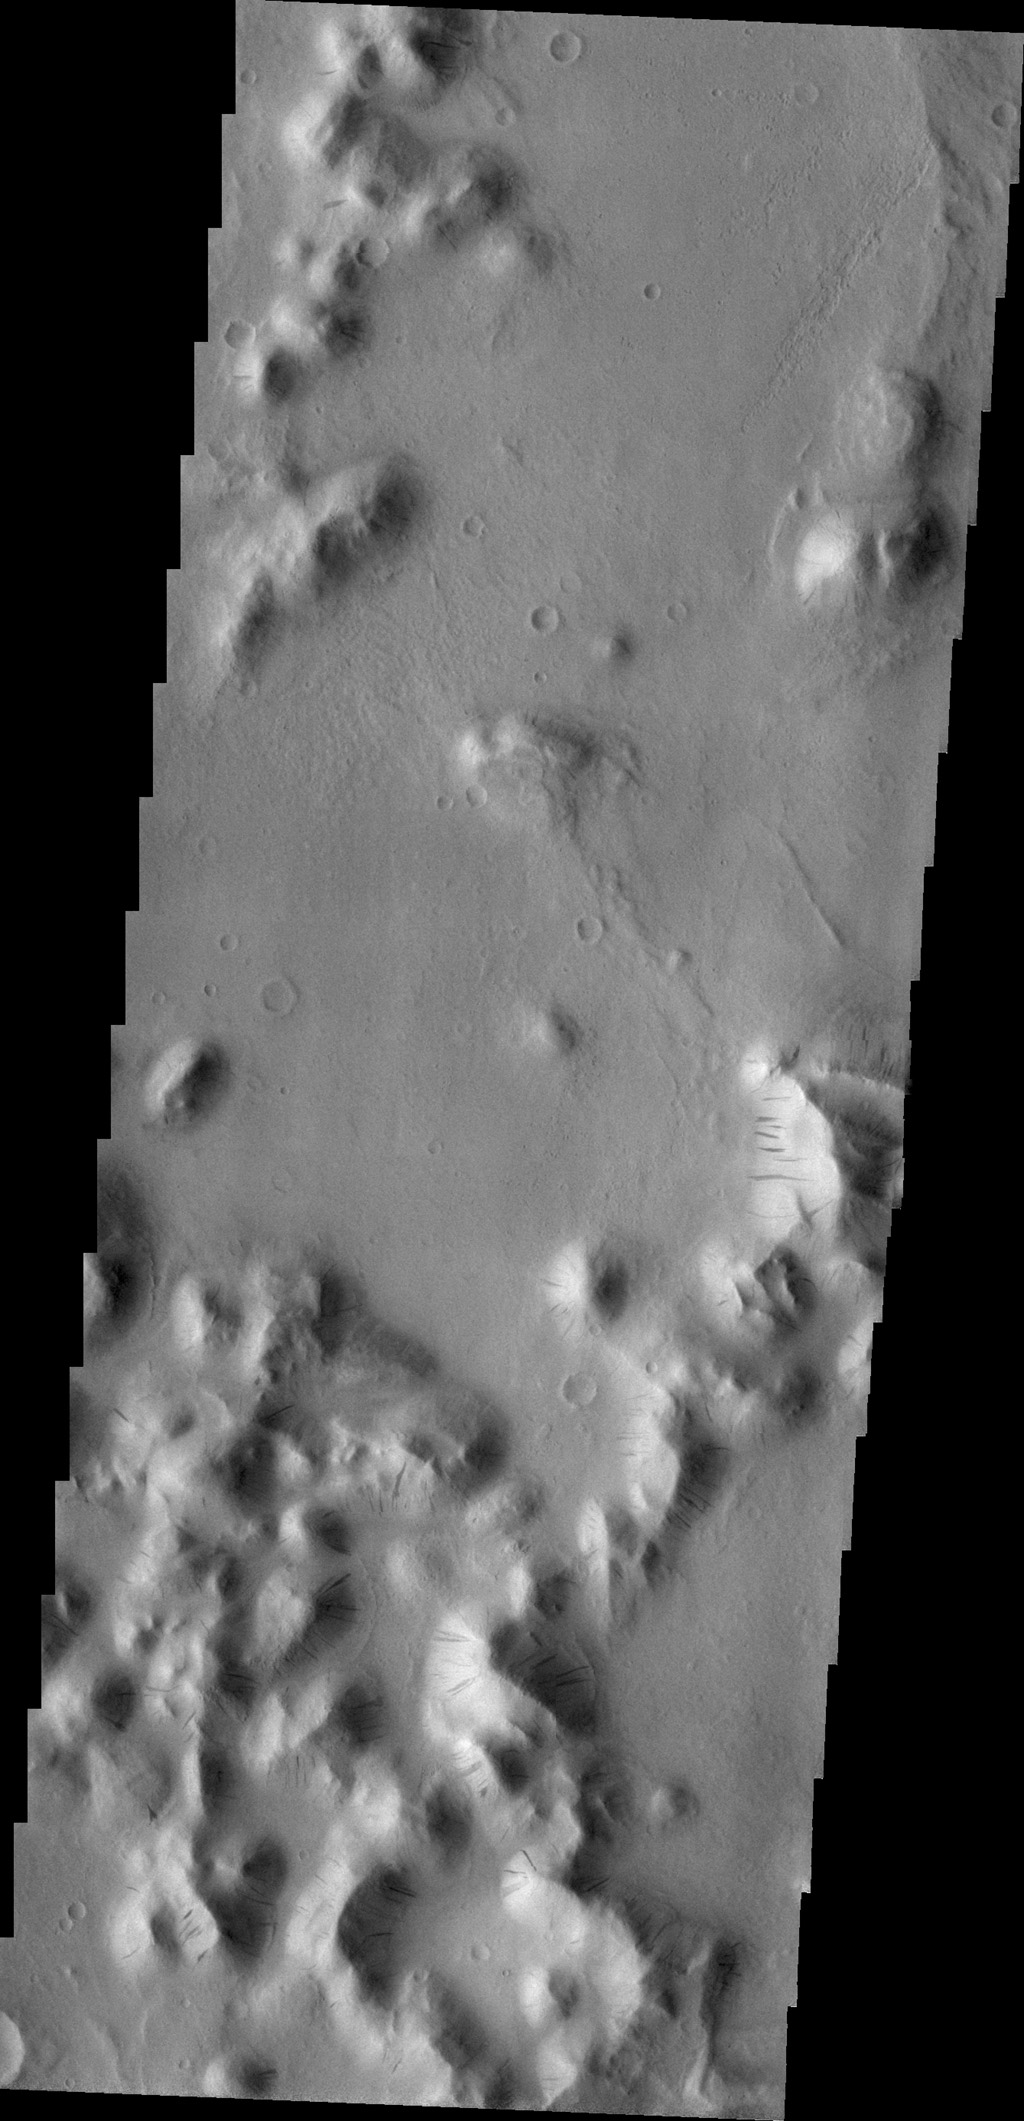 Dark slope streaks are visible in this image of Amazonis Planitia captured by NASA's 2001 Mars Odyssey spacecraft.